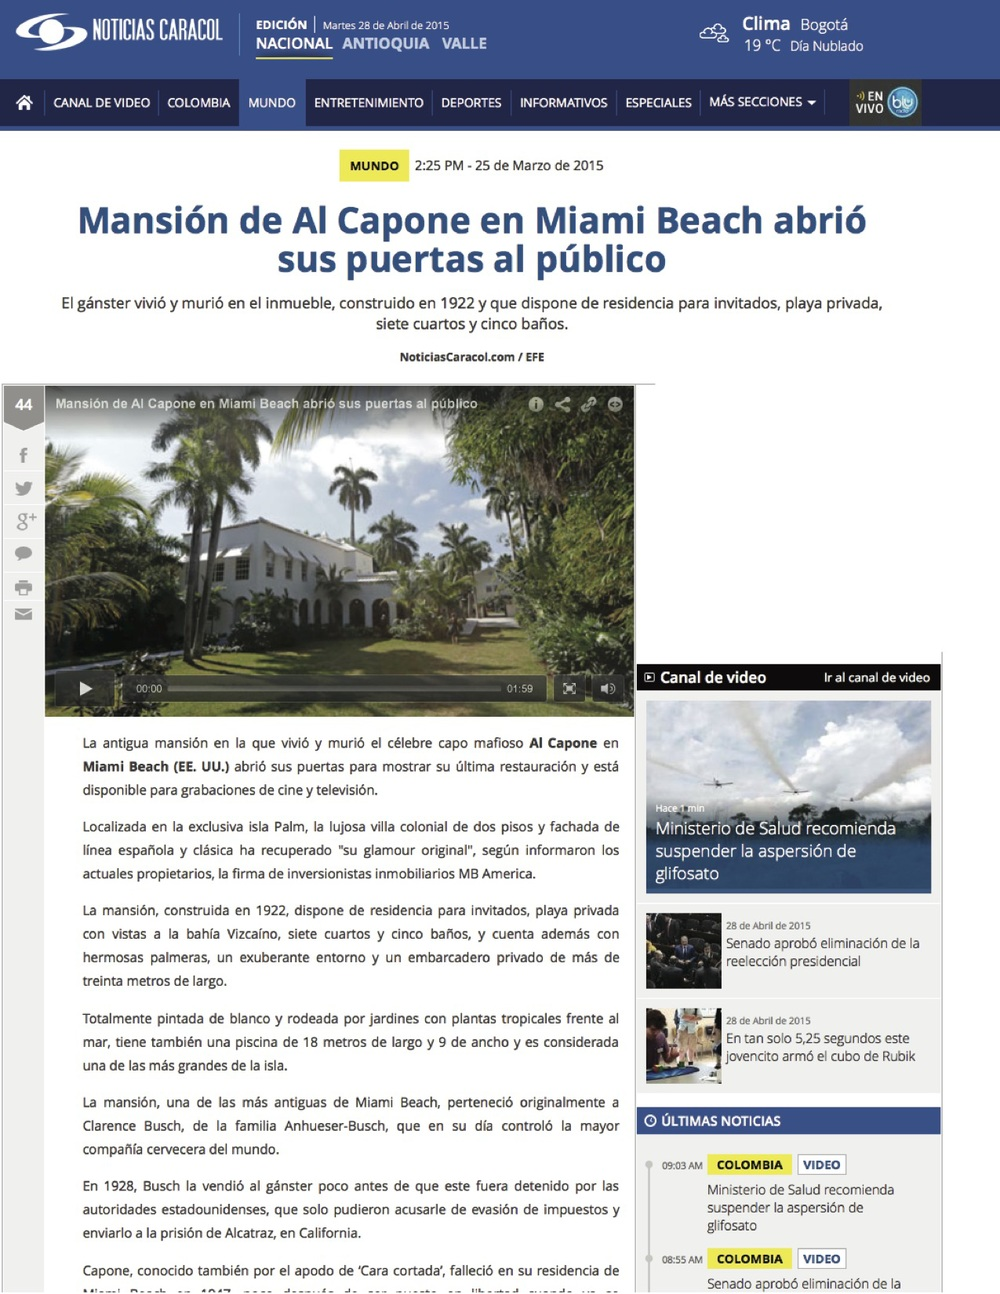 "<p><strong>Noticias Caracol</strong><a href=""http://www.noticiascaracol.com/mundo/mansion-de-al-capone-en-miami-beach-abrio-sus-puertas-al-publico"" target=""_blank"">Watch Video →</a></p>"